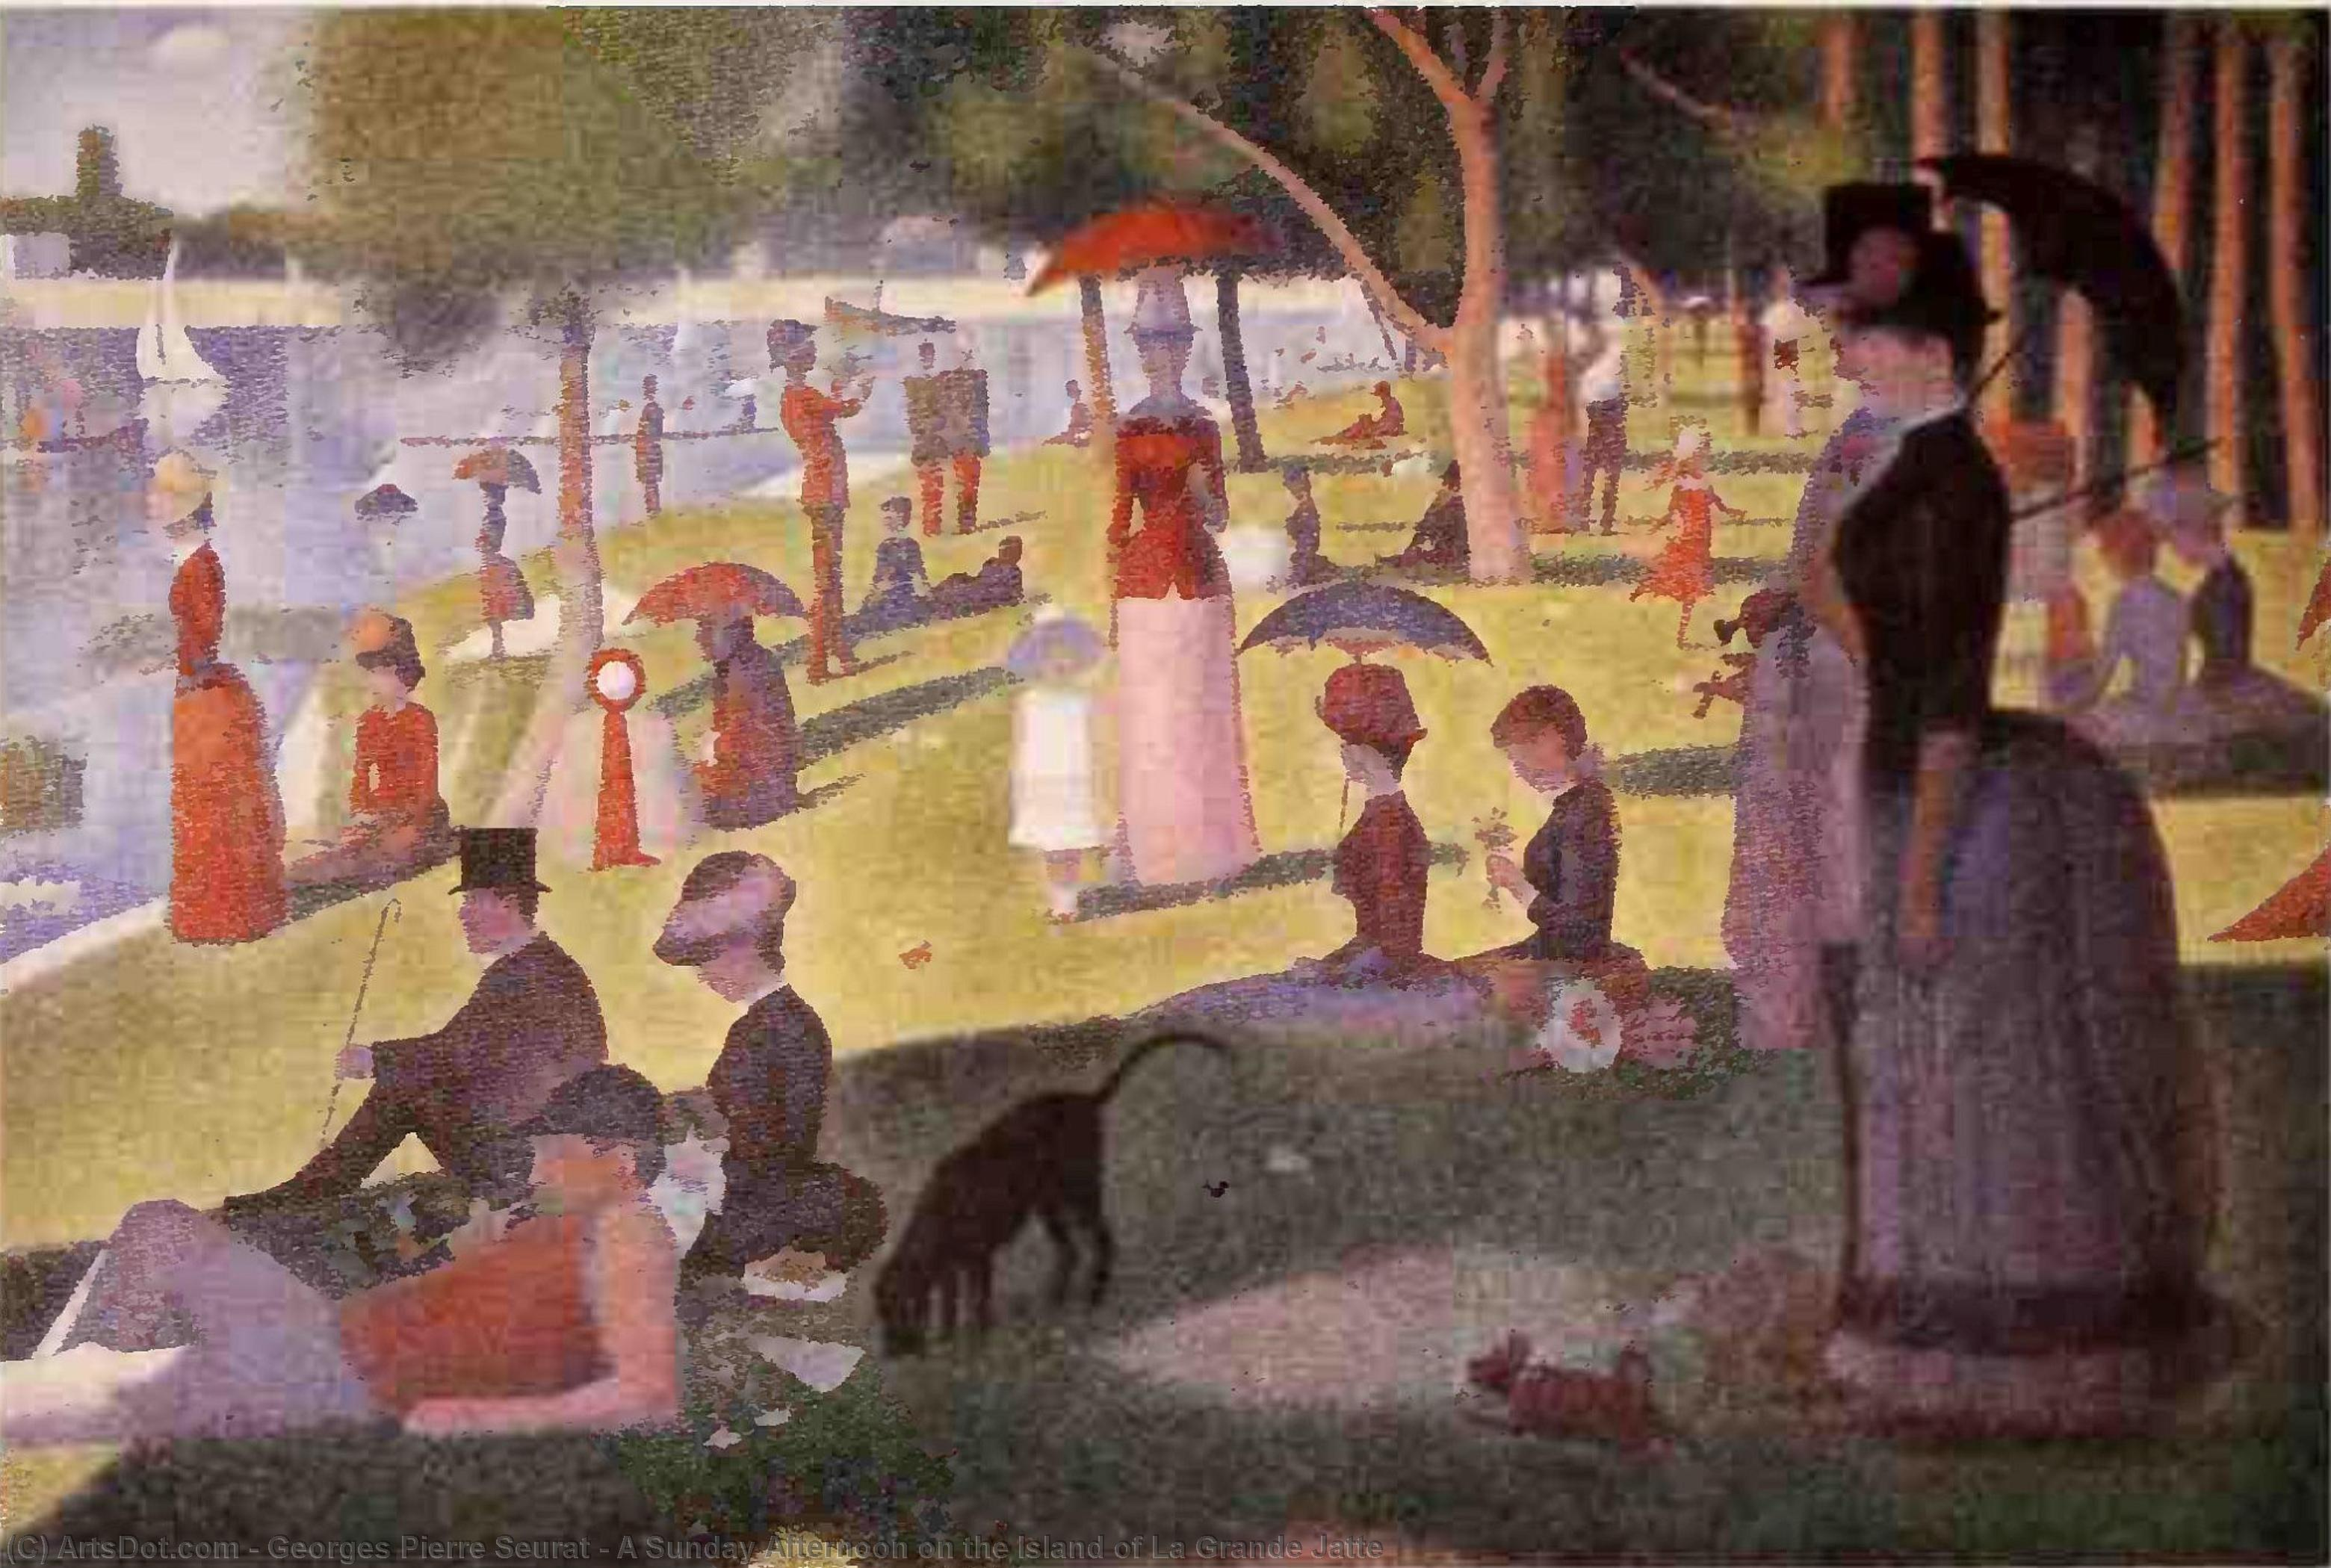 WikiOO.org - Encyclopedia of Fine Arts - Målning, konstverk Georges Pierre Seurat - A Sunday Afternoon on the Island of La Grande Jatte